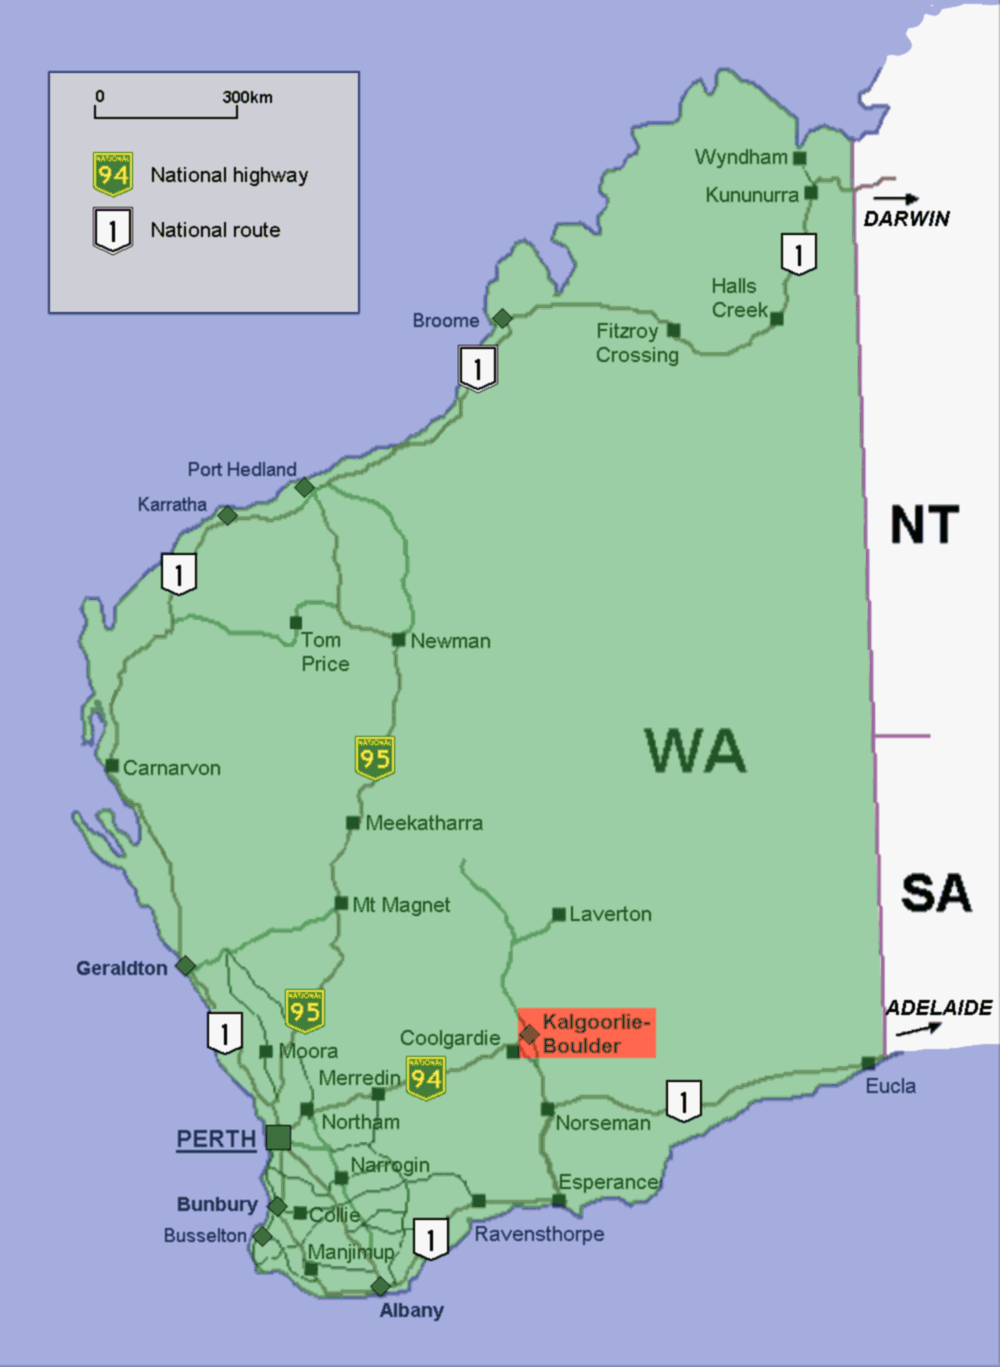 Australia Map Location.File Kalgoorlie Location Map In Western Australia Png Wikimedia